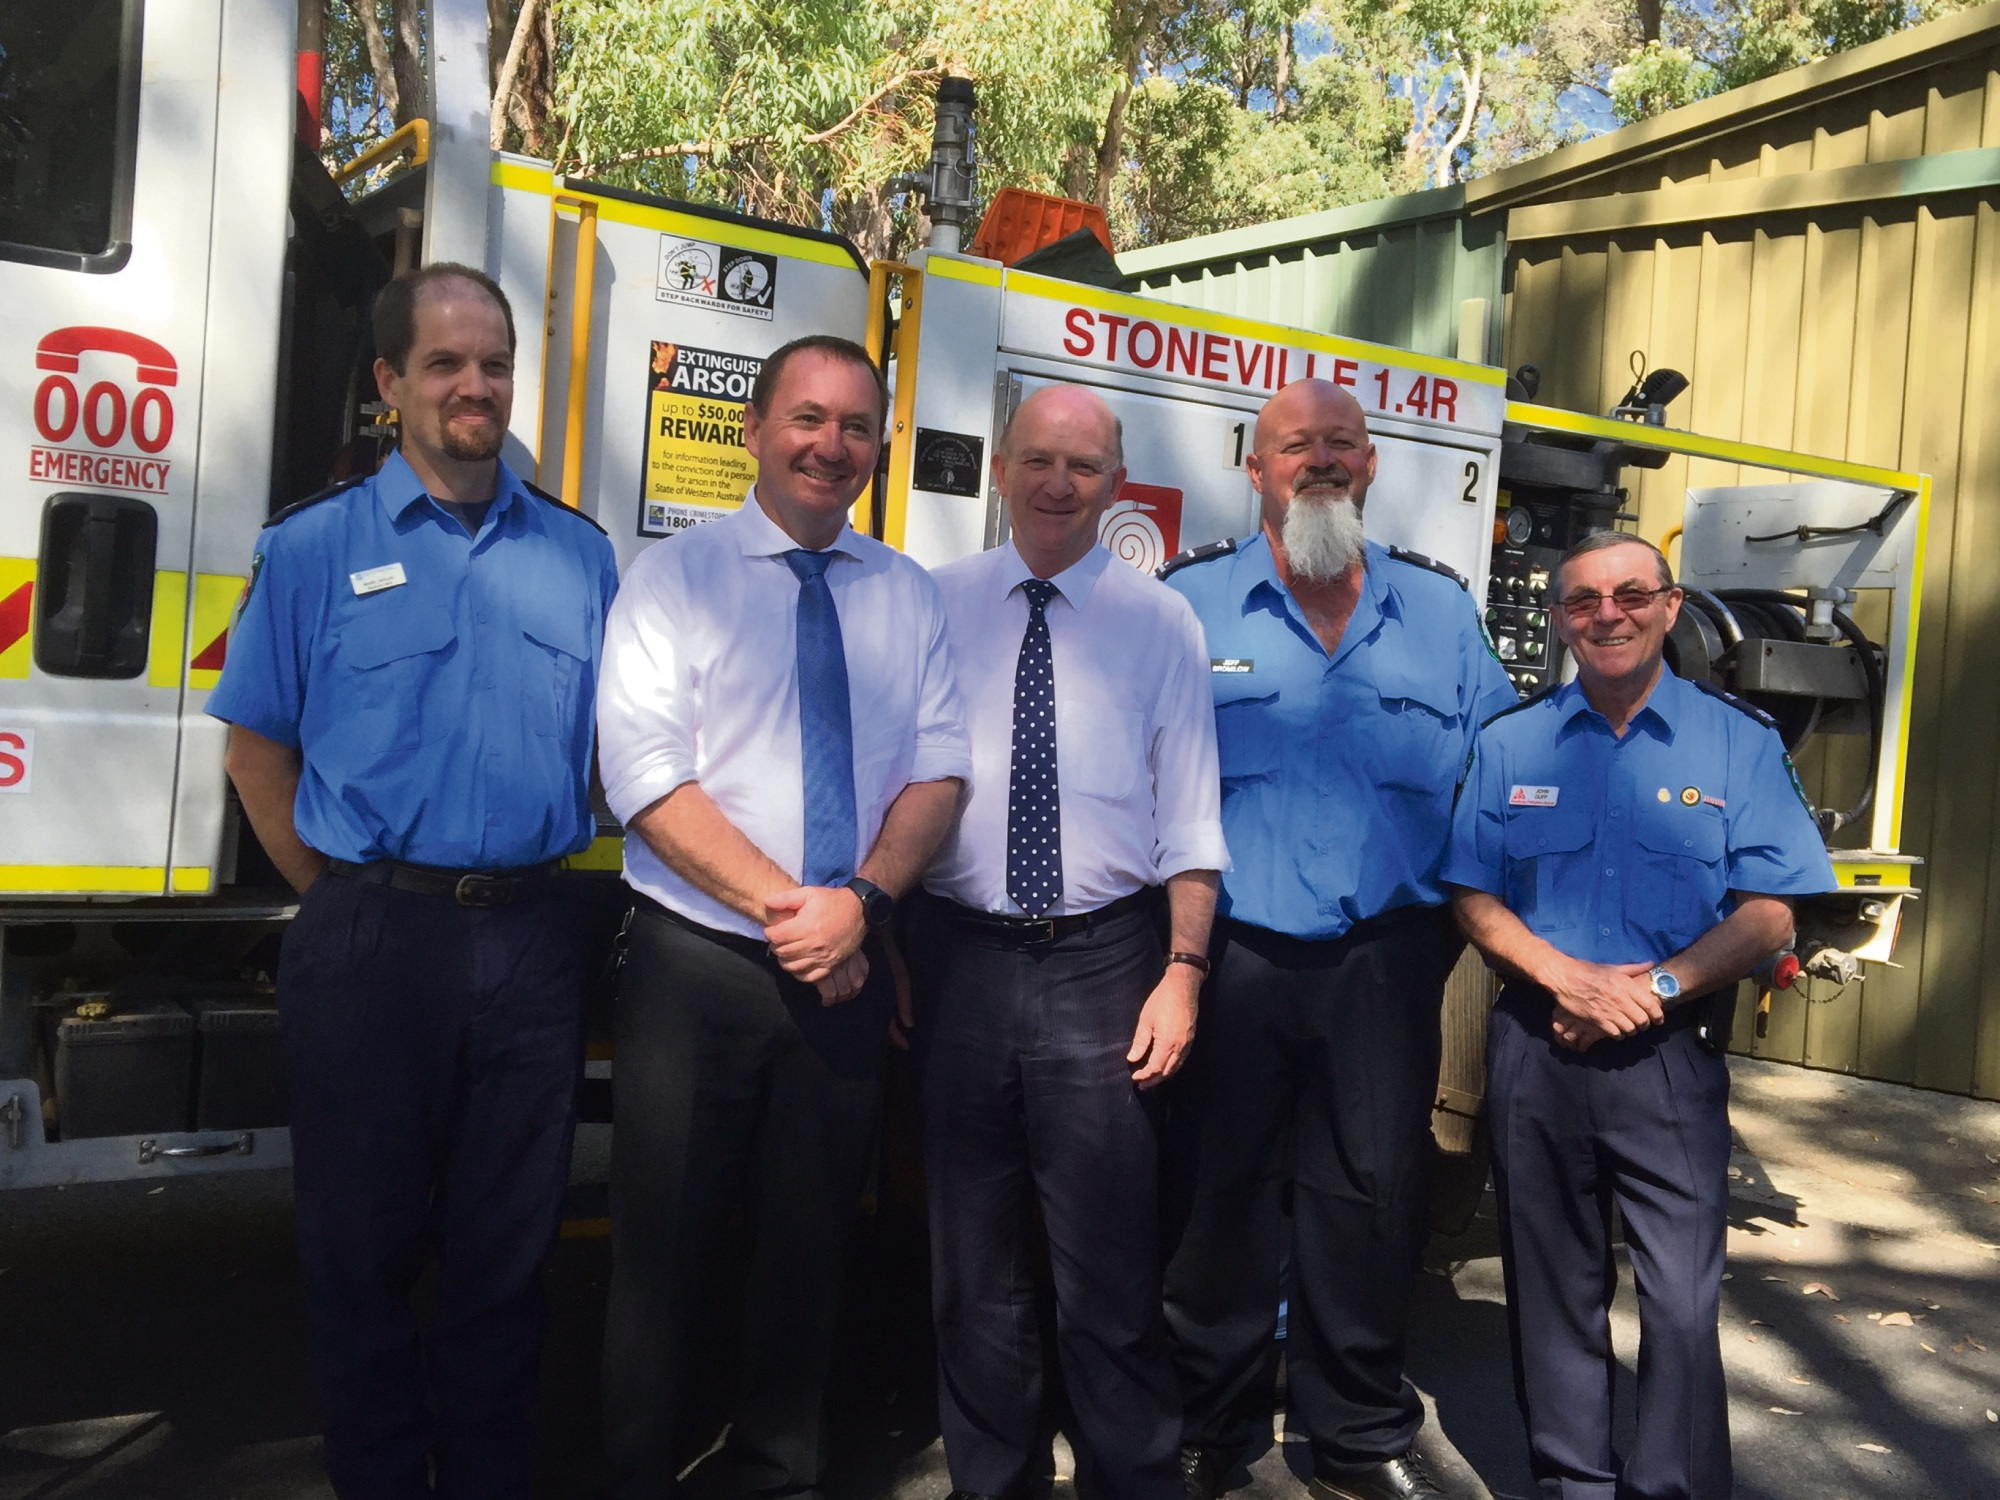 Emergency Services Minister Joe Francis and Kalamunda MLA John Day with members of the Stoneville Volunteer Bushfire Brigade.